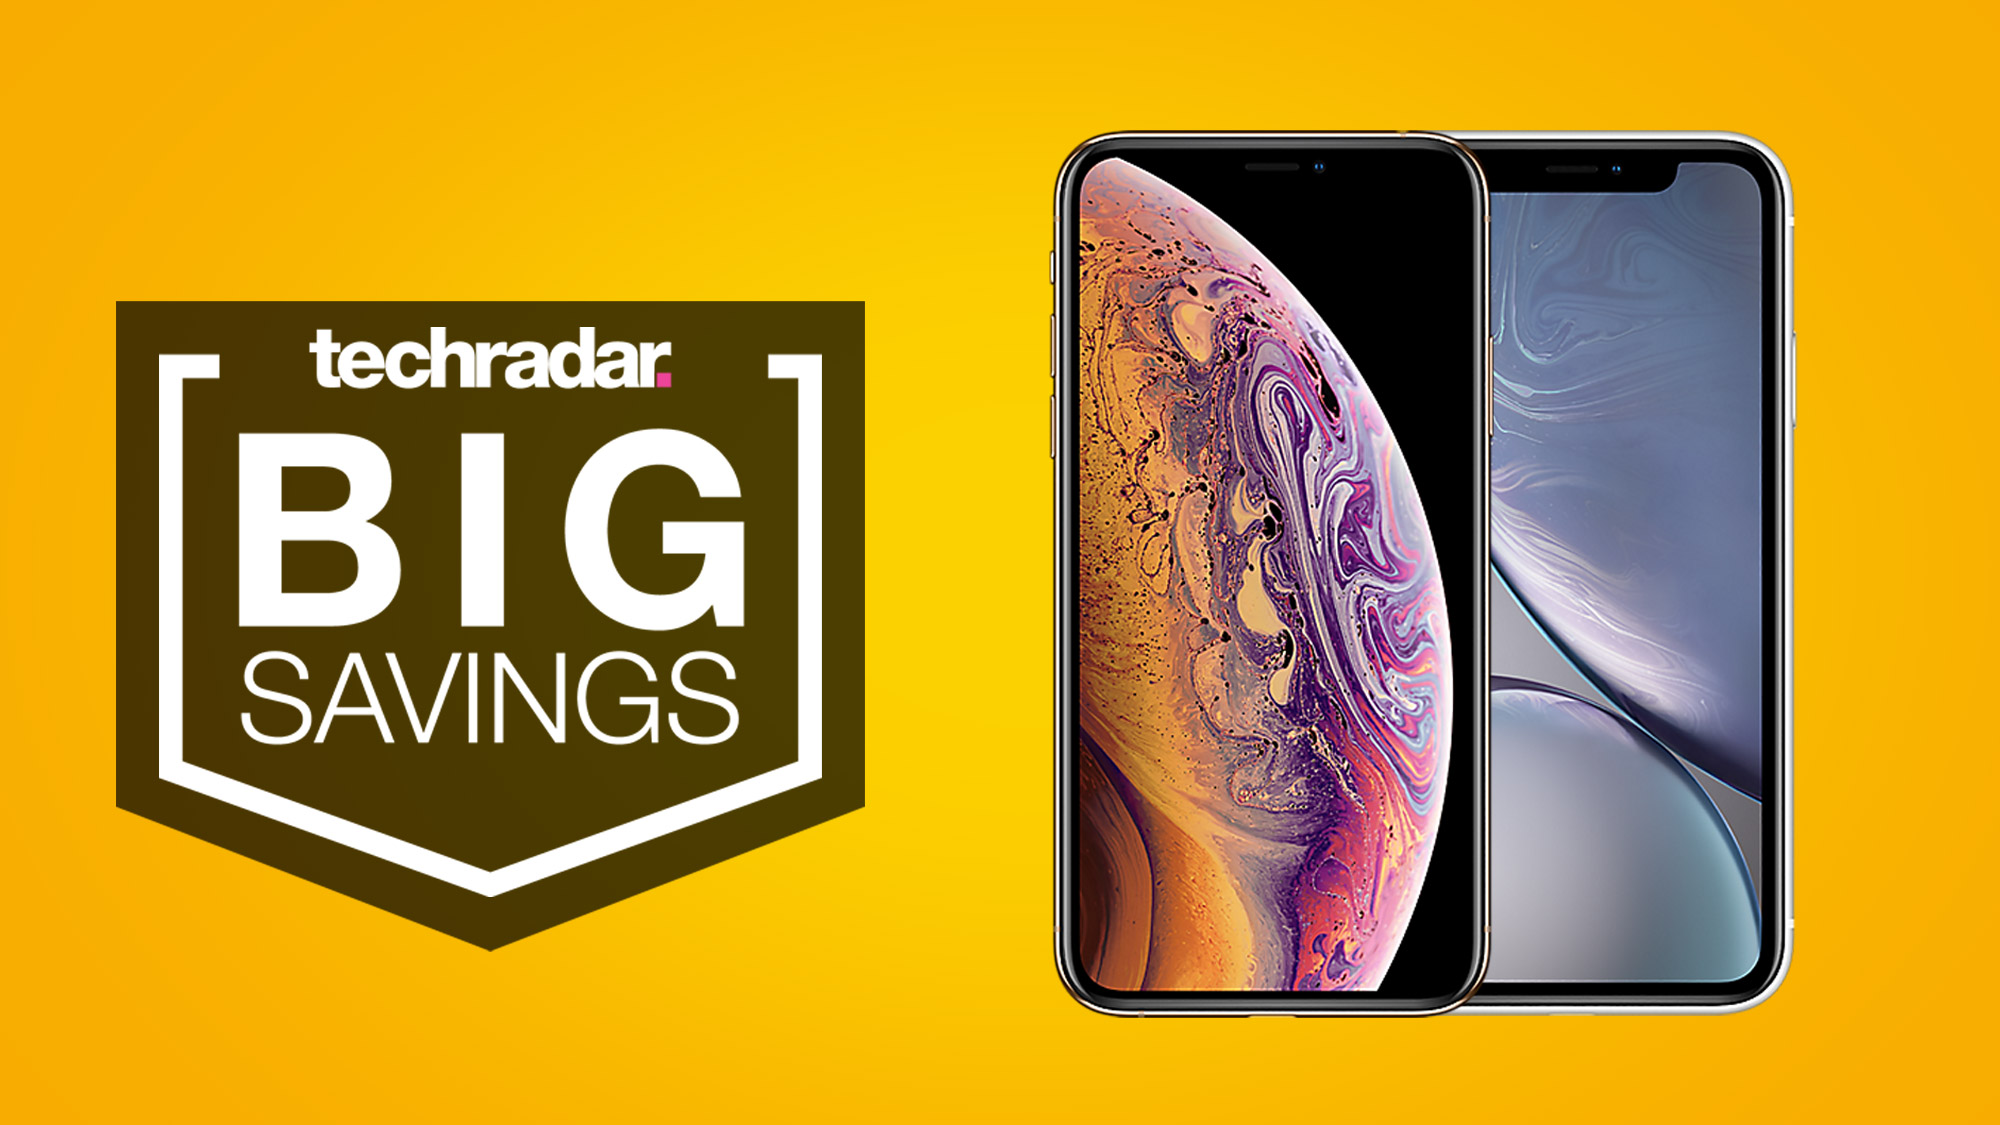 These cut-price iPhone XS and XR deals will save you a packet on your new device